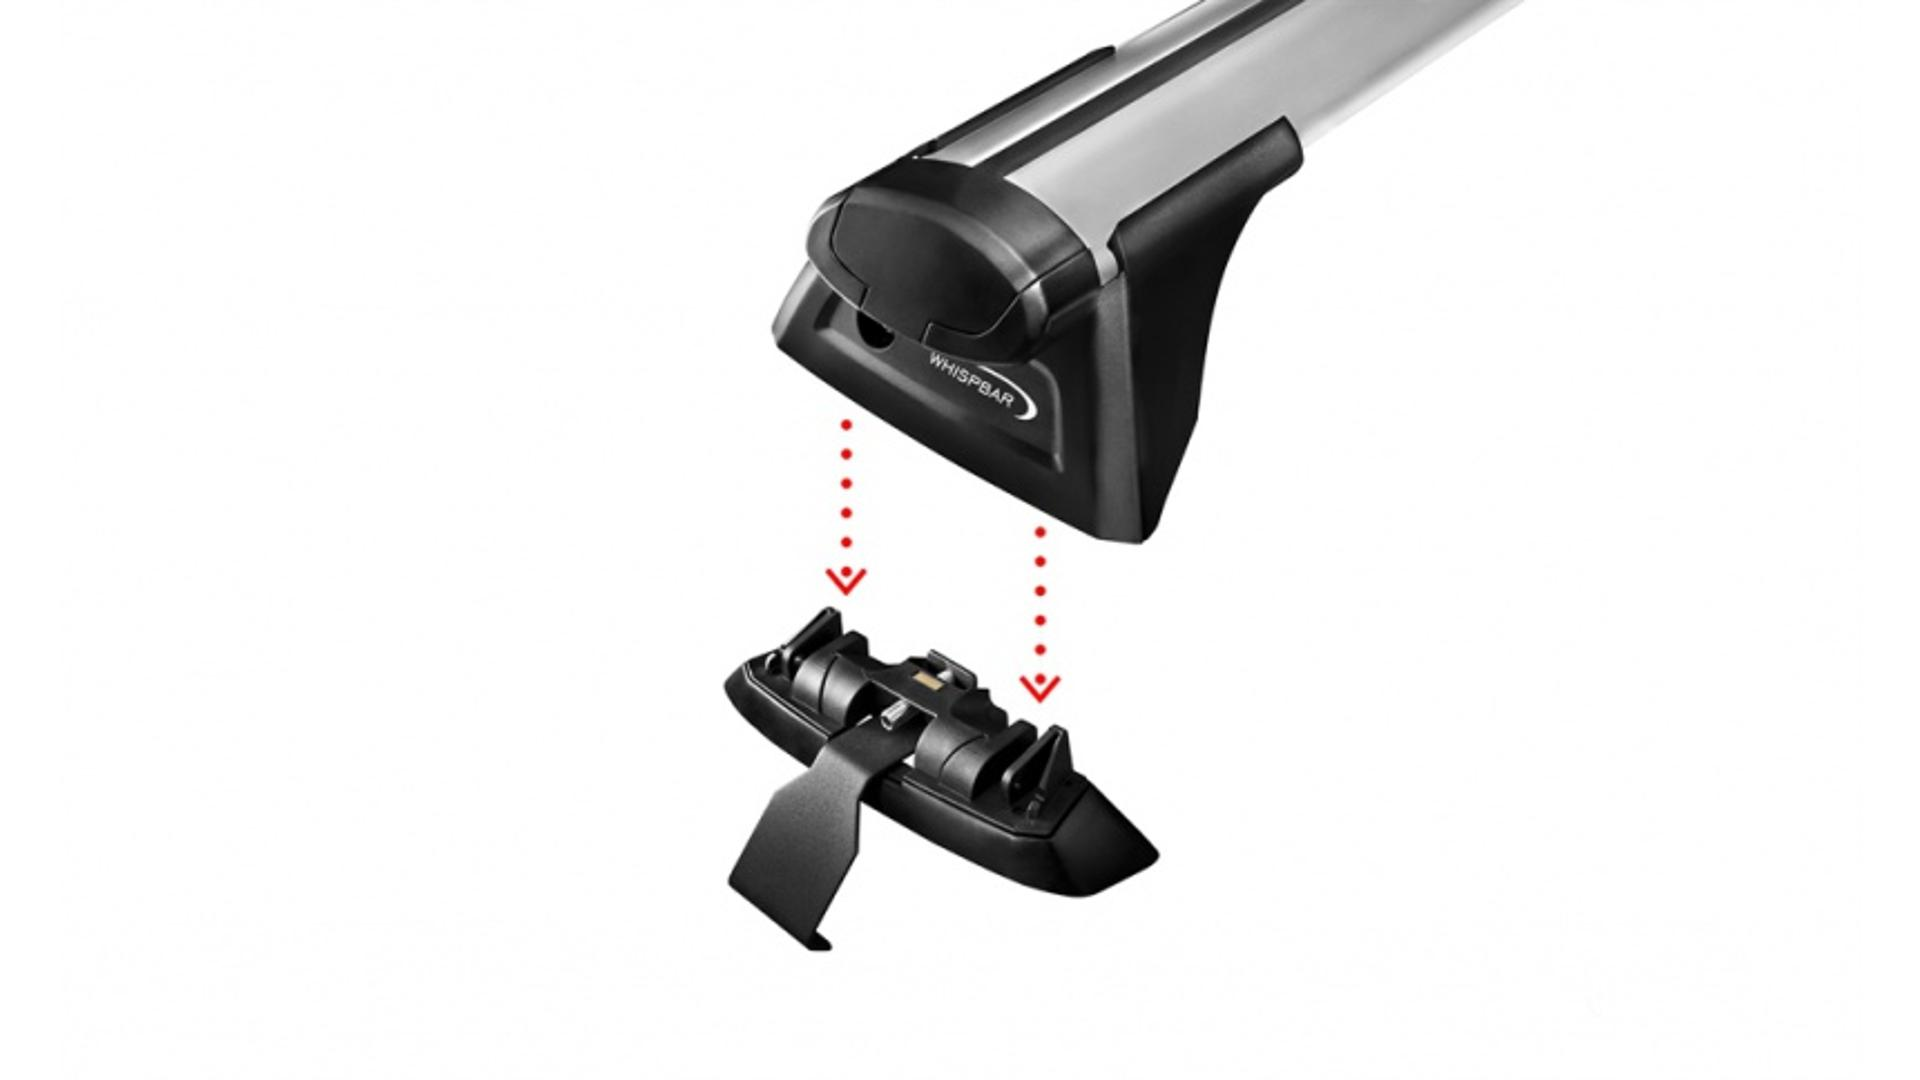 Whispbar montážní sada - Clamp Mount - K1057W